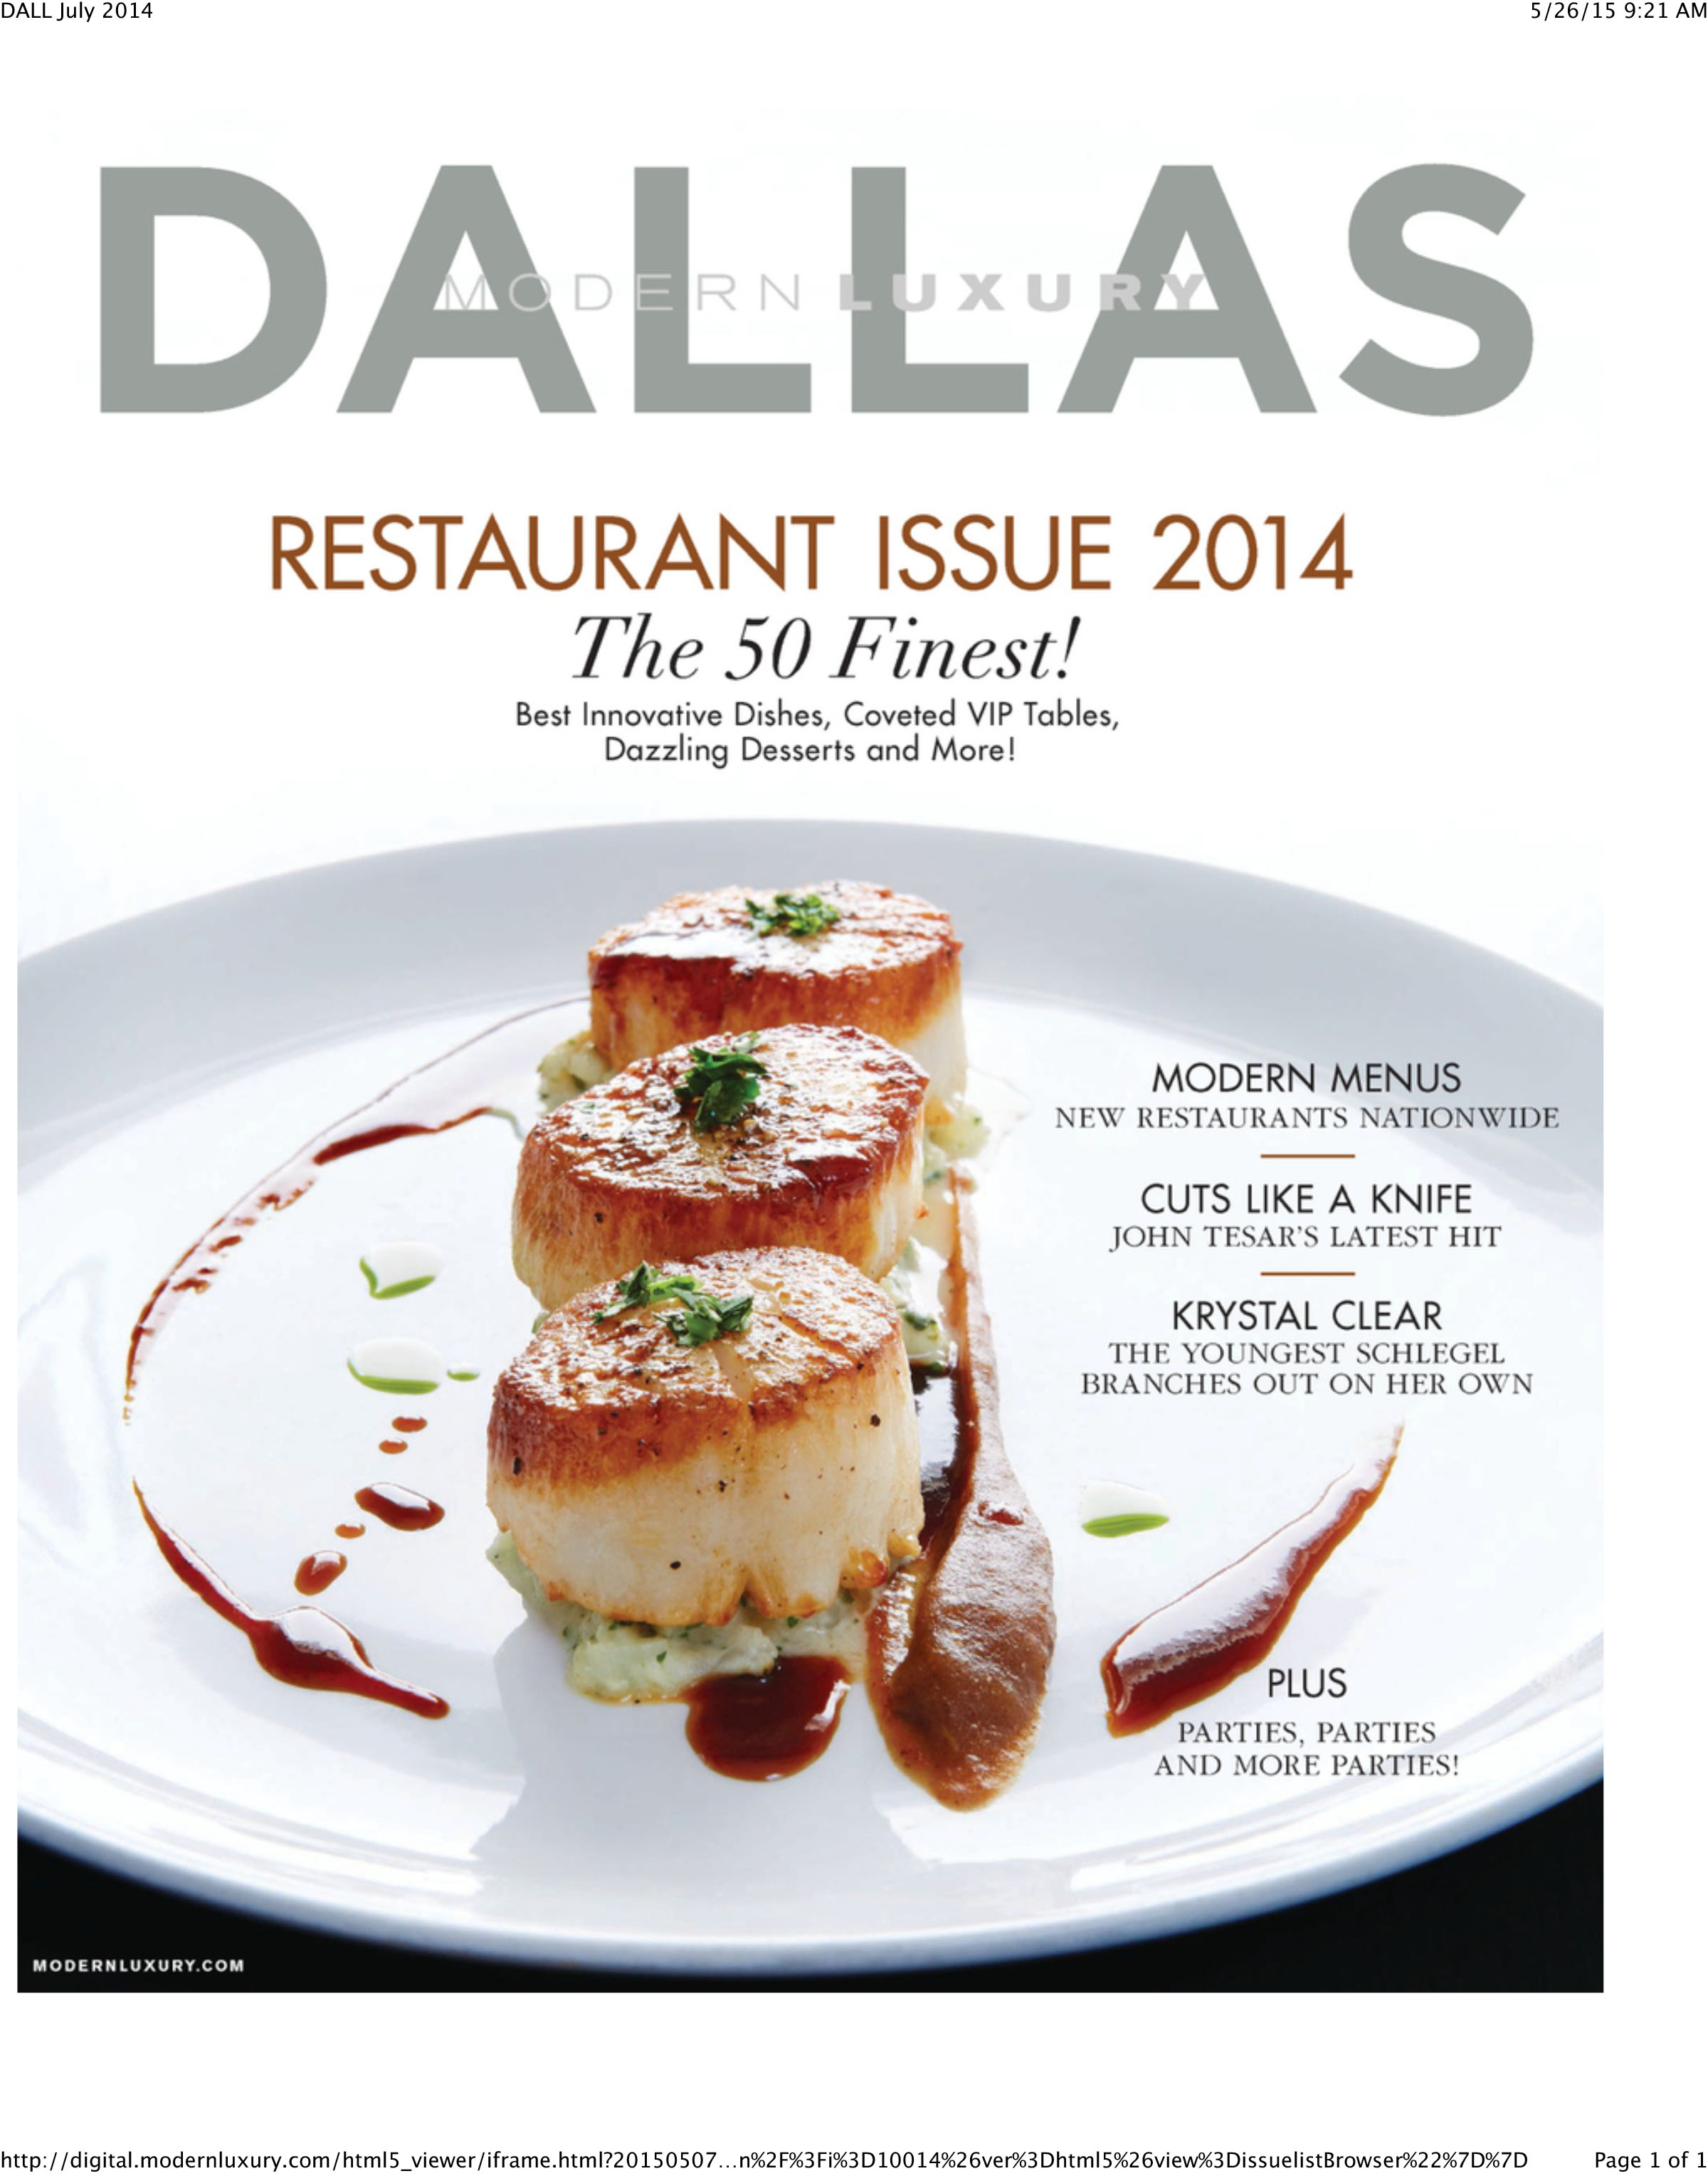 DALL Mod Lux July 2014cover.jpg